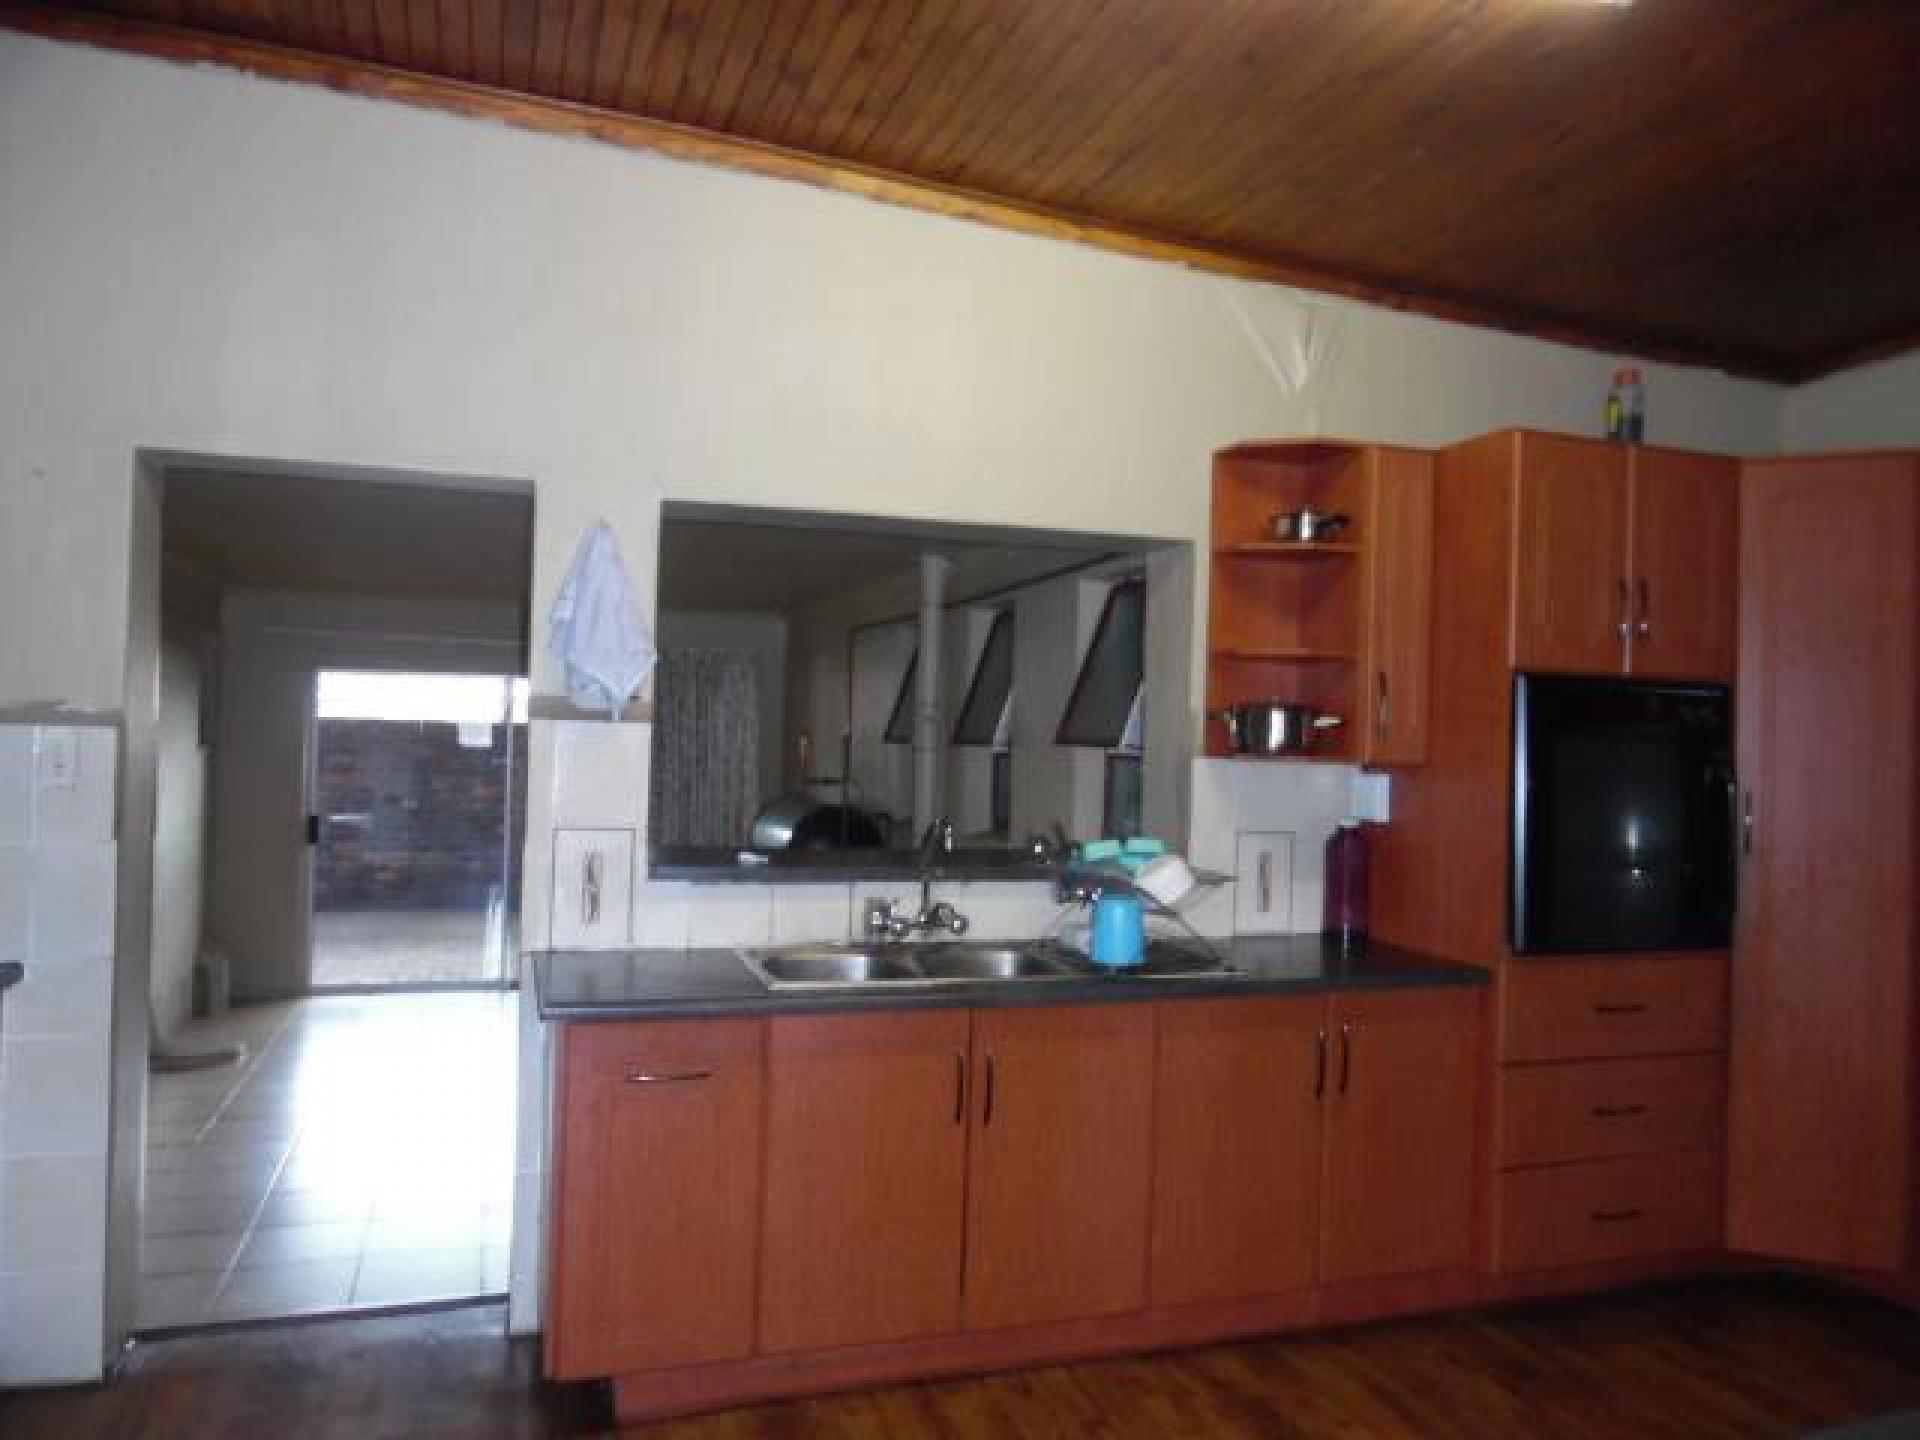 Kitchen of property in BARRY HERTZOG PARK